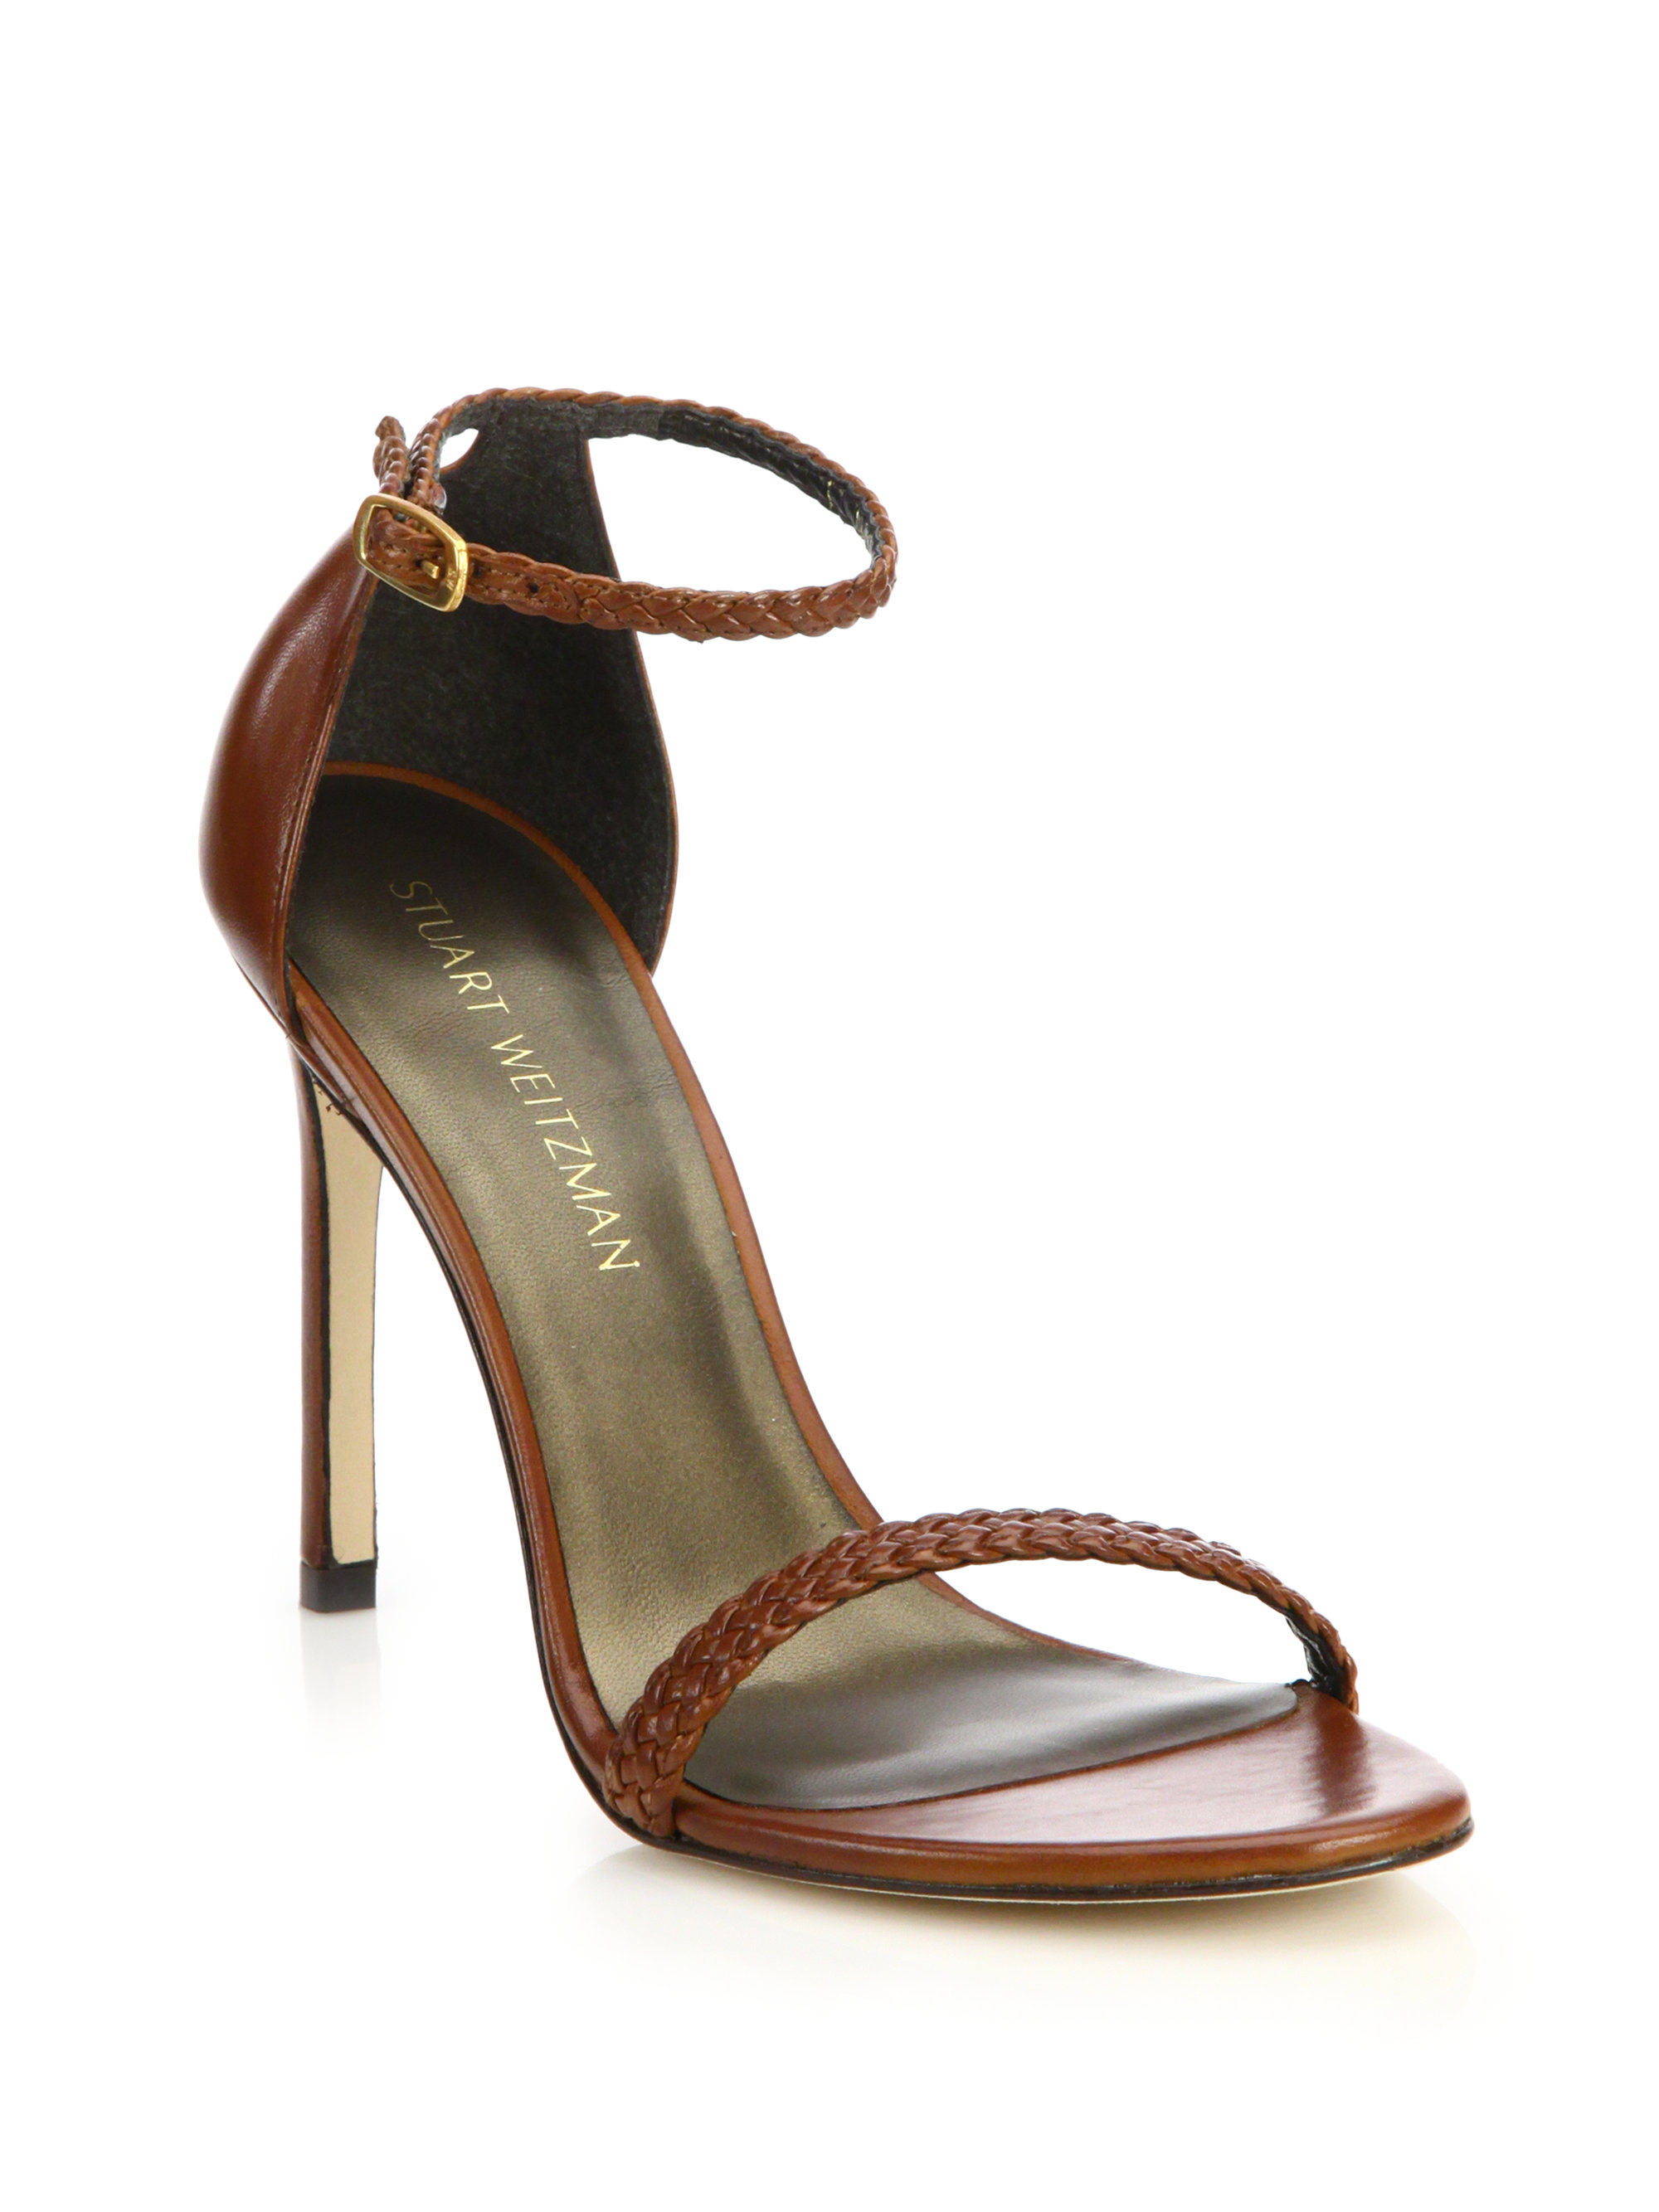 Stuart Weitzman Nudist woven sandals